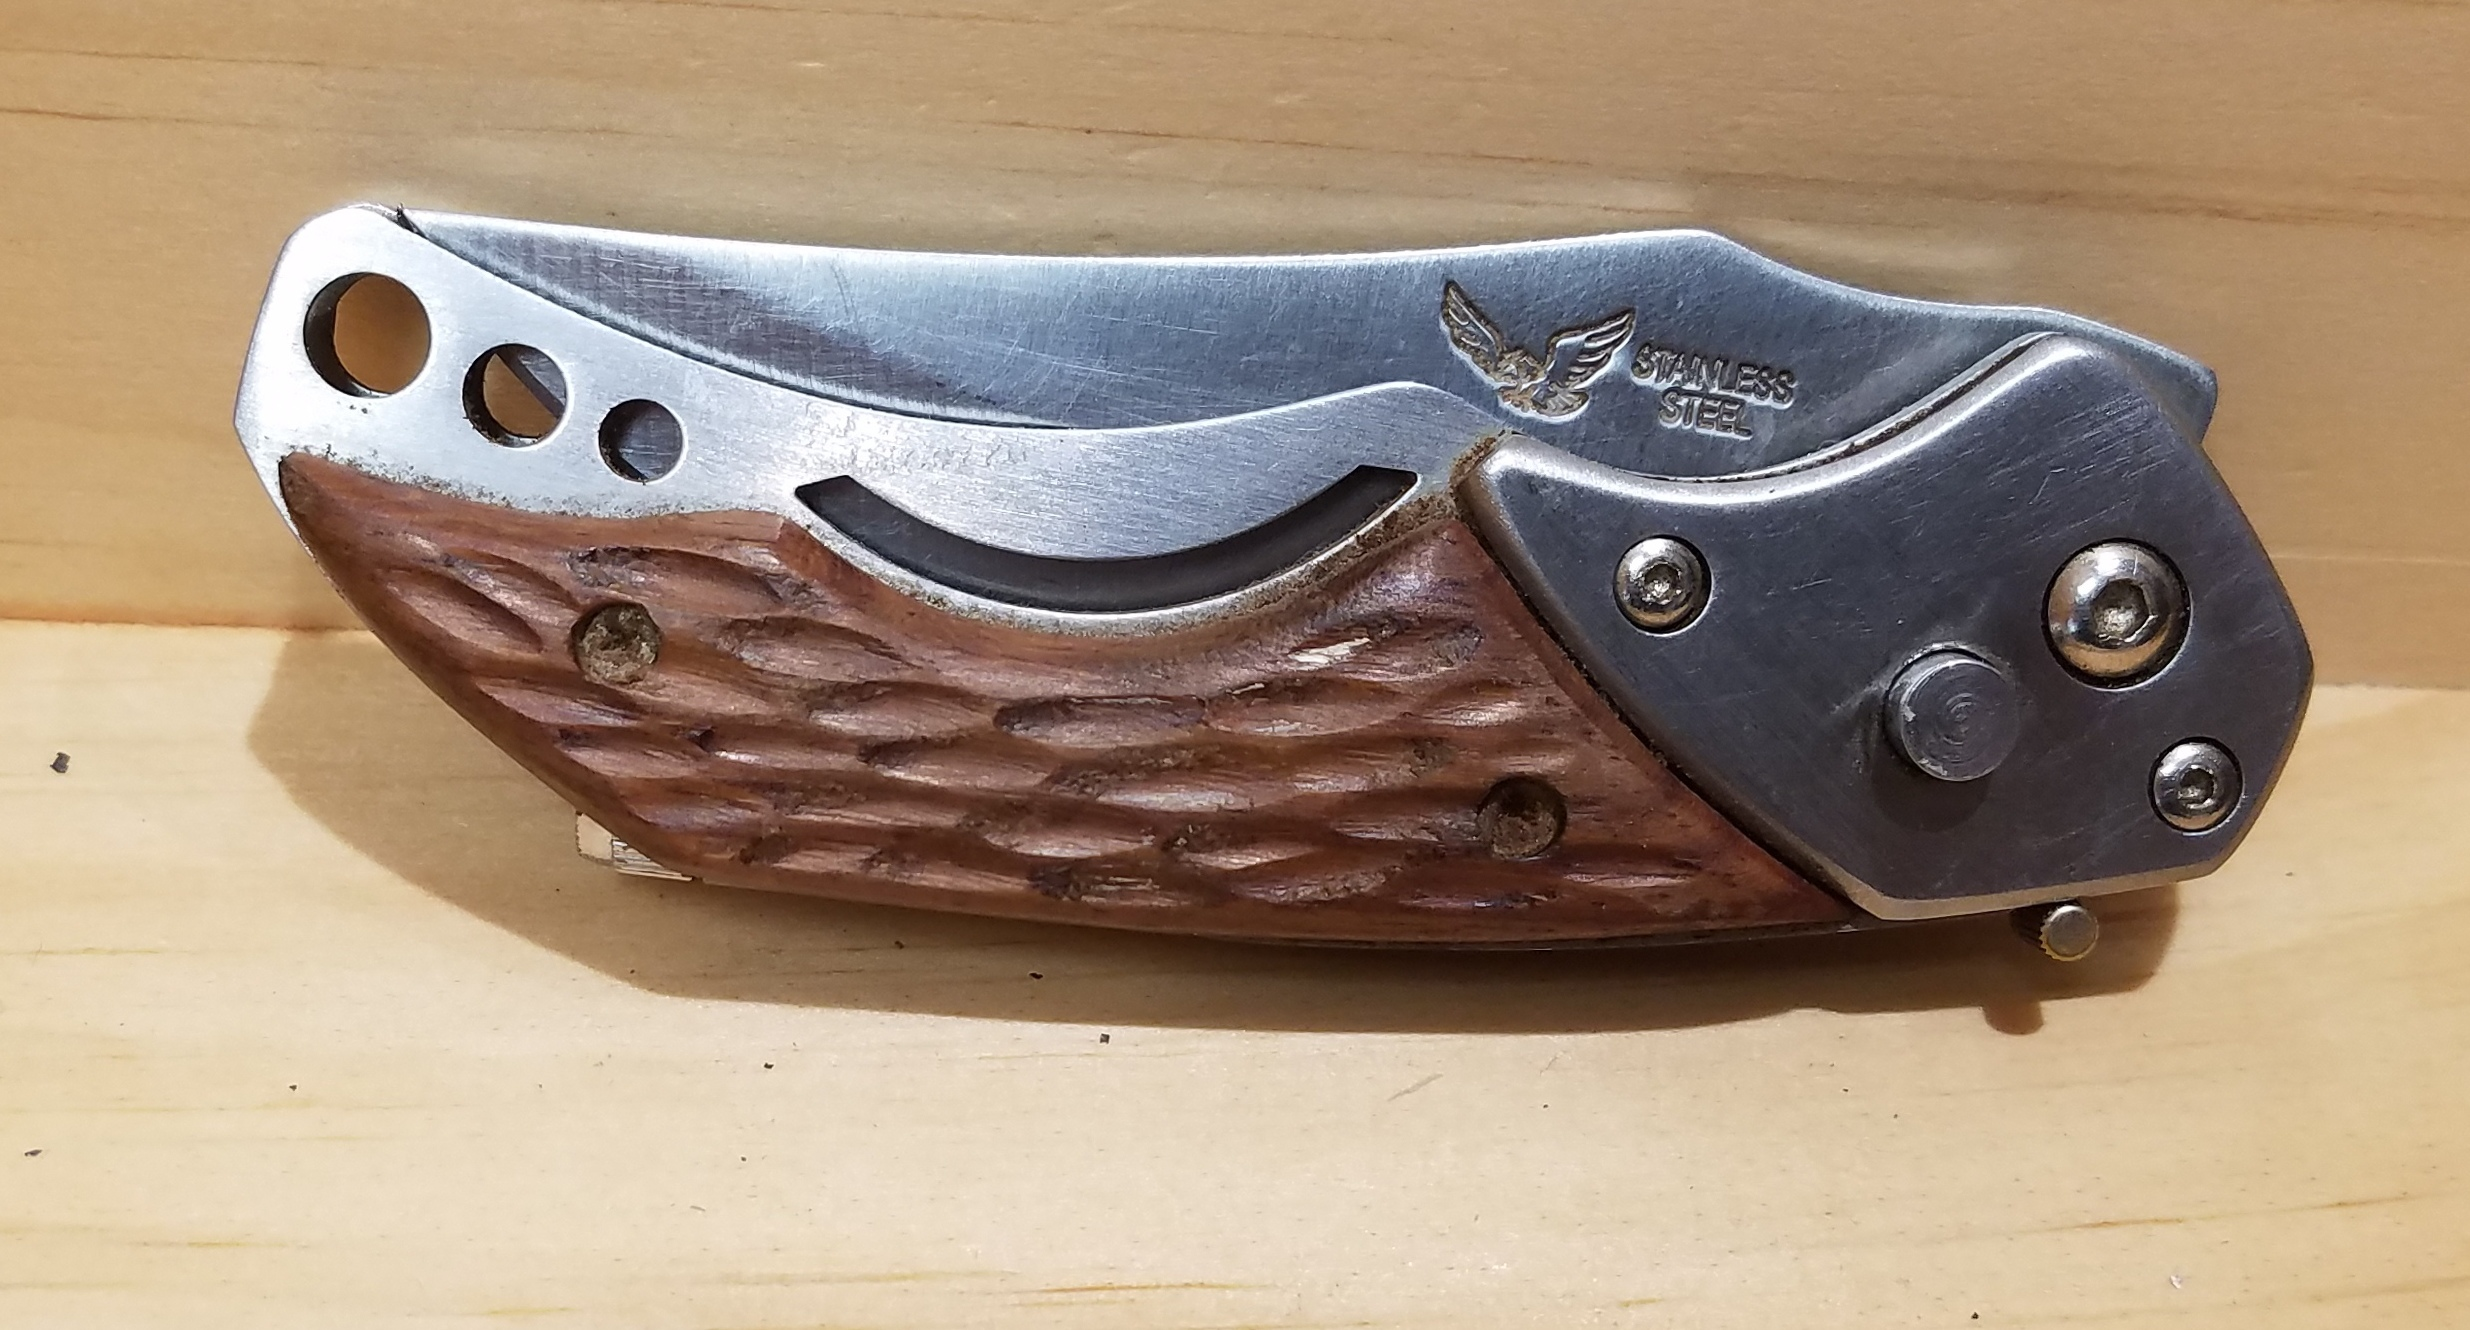 KNIFE HUNTING SUPPLIES